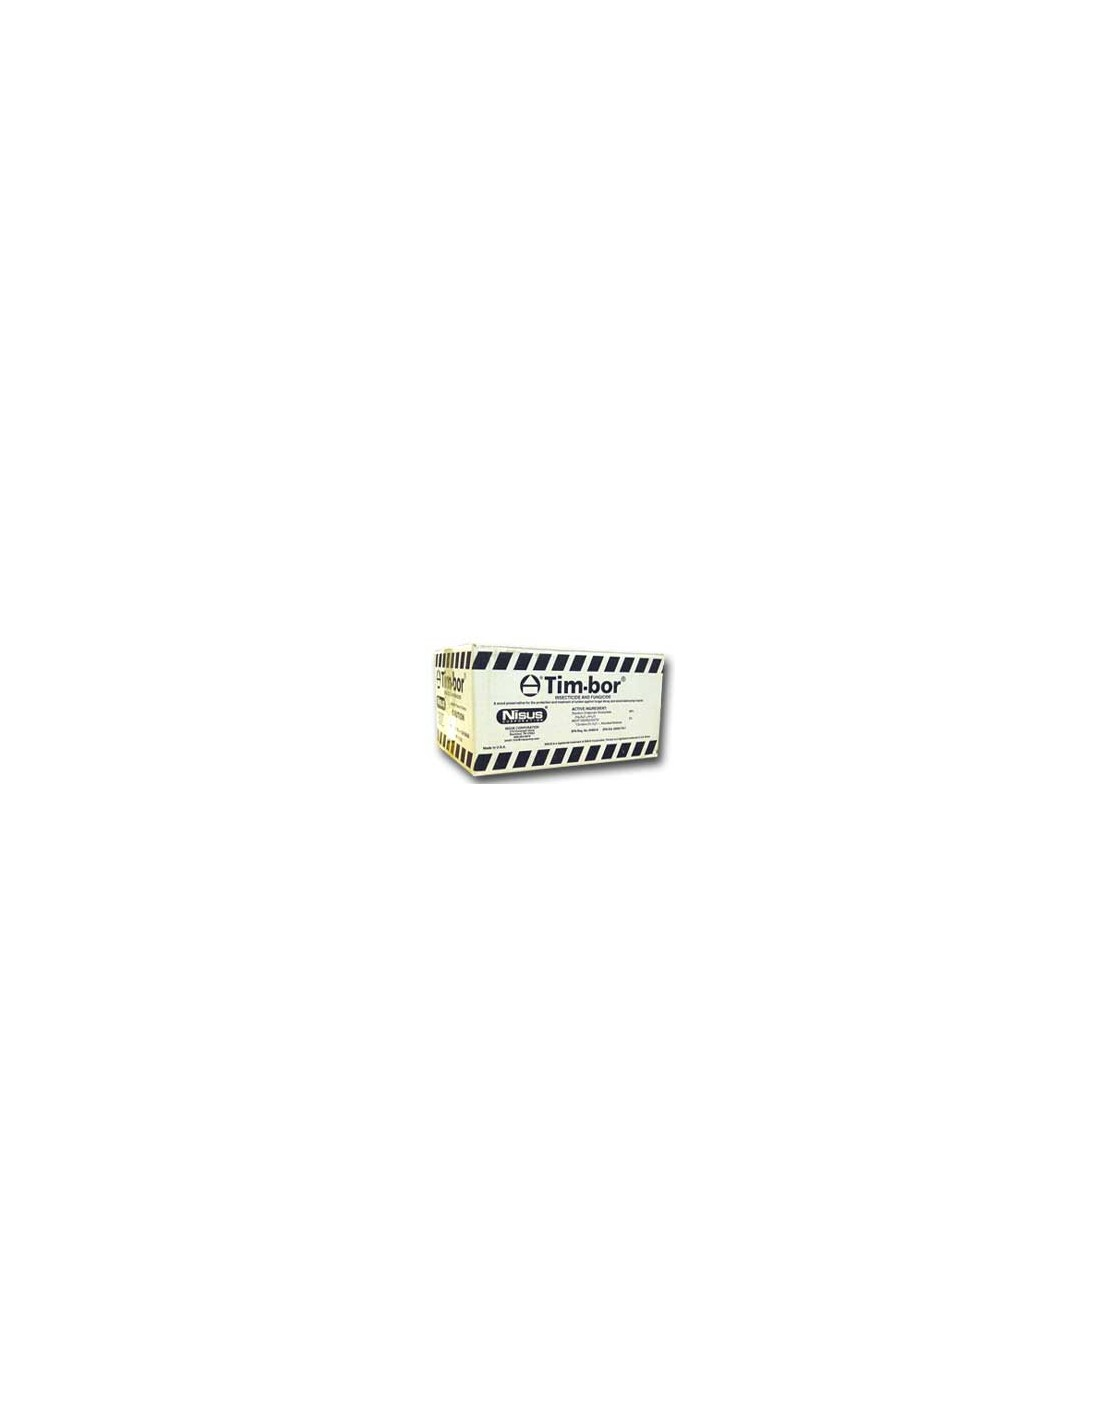 How long should I wait between treatments of Tim-bor on my barn walls and floor as I try to kill PowderPost Beetle